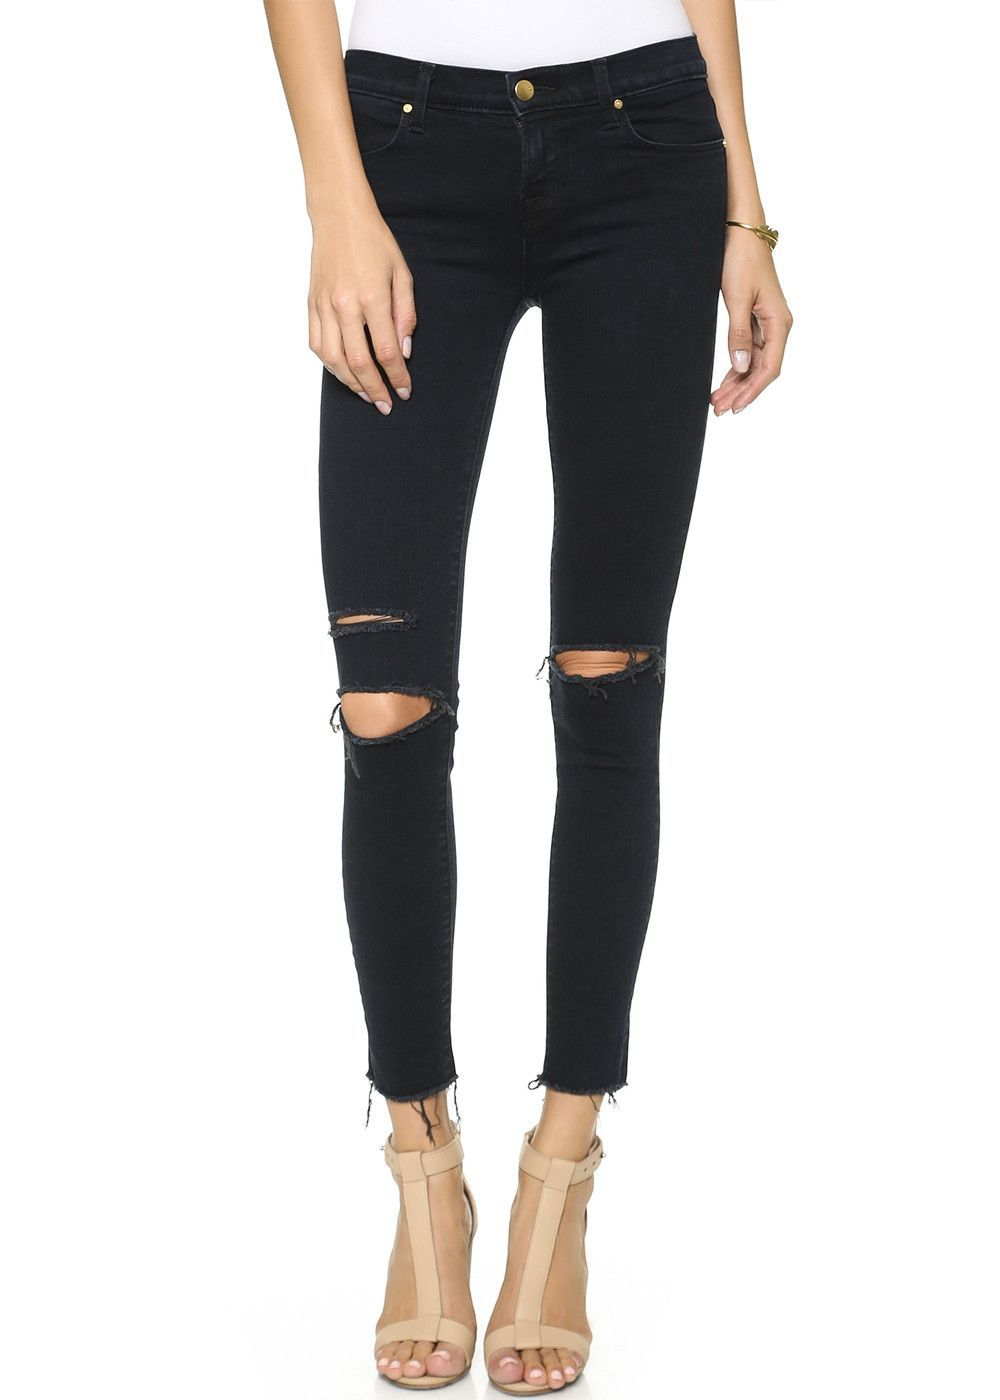 Black skinny ripped knee jeans, want to wear in winter with